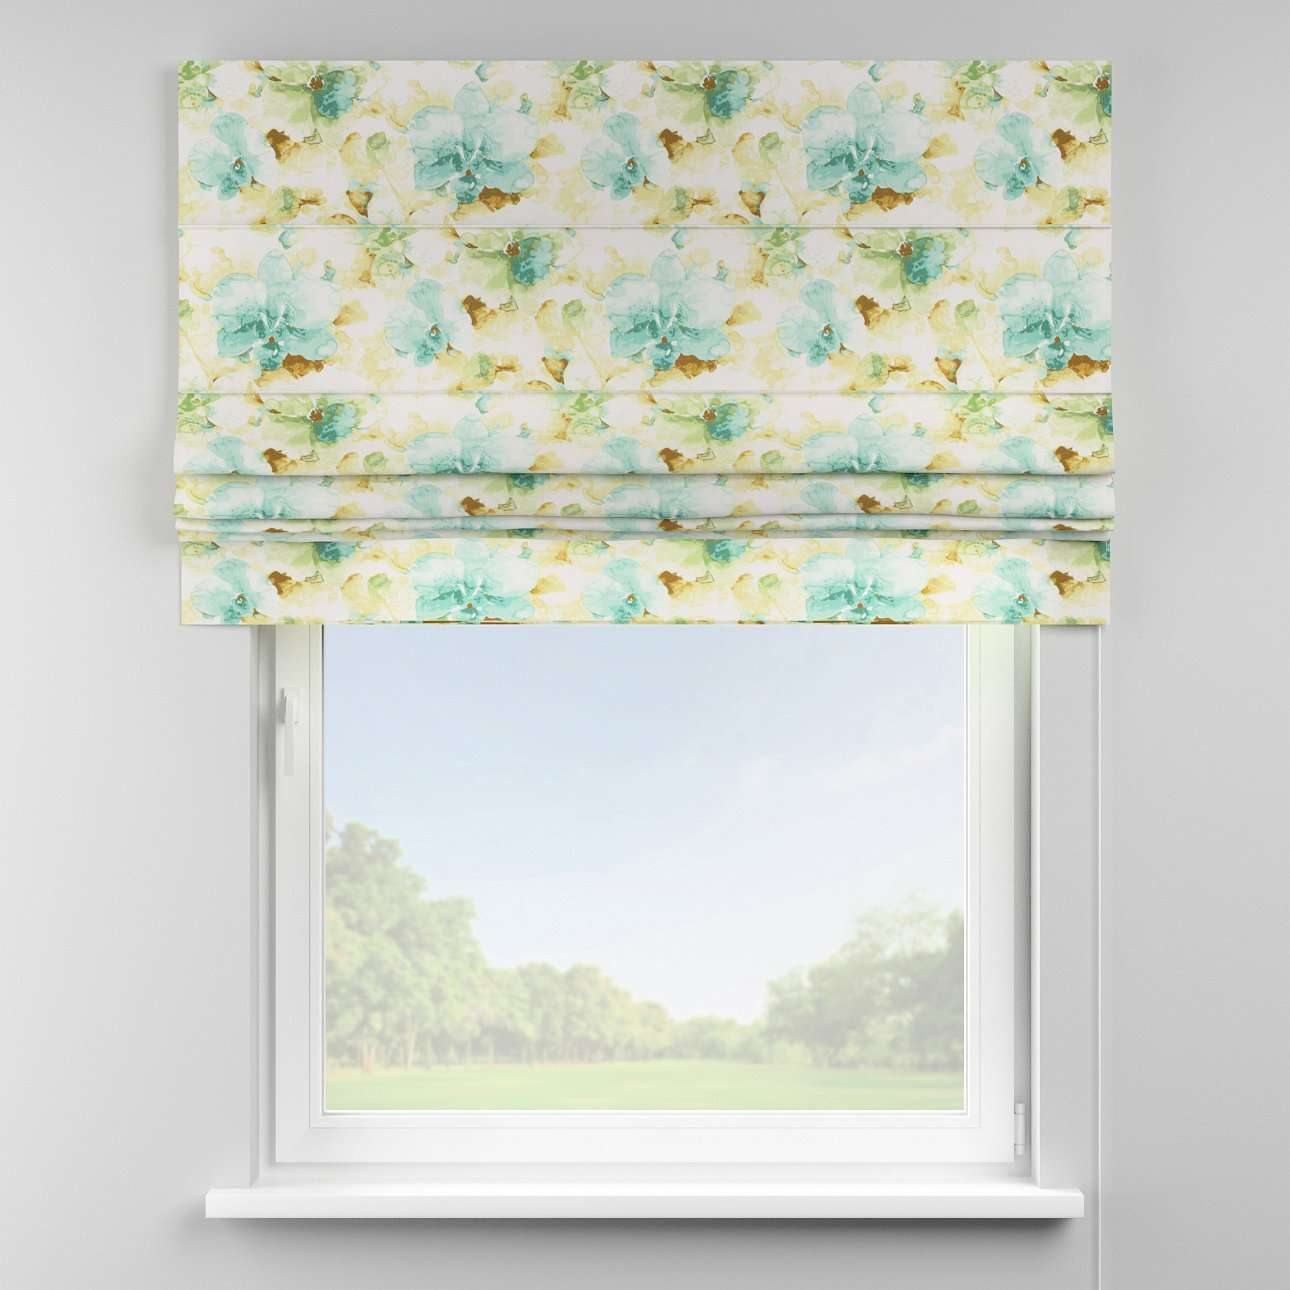 Padva roman blind  80 x 170 cm (31.5 x 67 inch) in collection Acapulco, fabric: 141-35